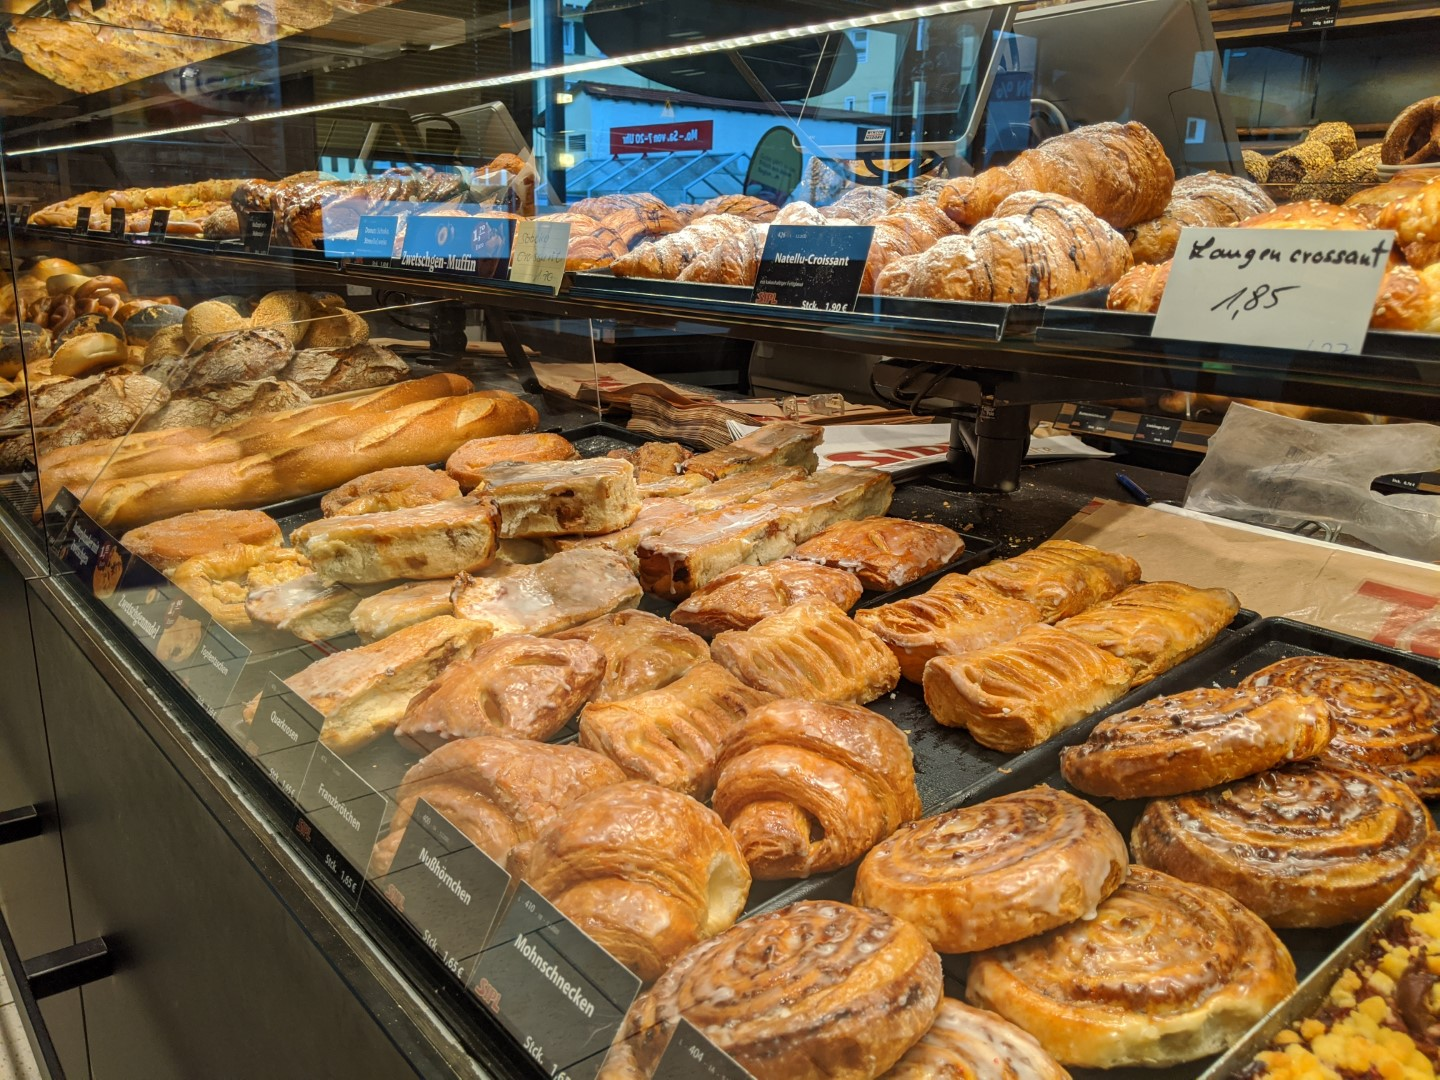 Fresh German Pastries from the Backery